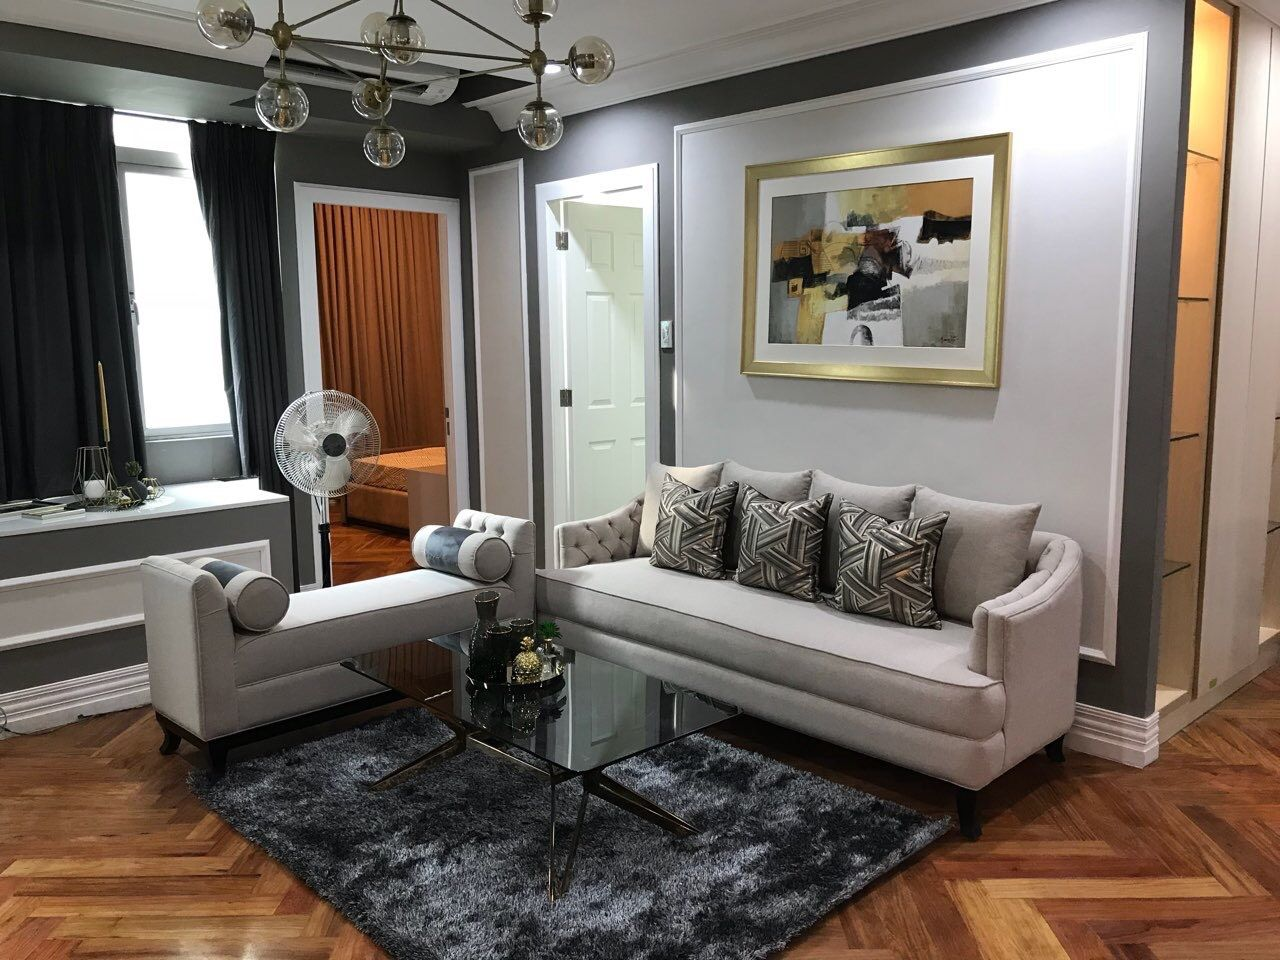 2 Bedroom Condo for Sale in BGC Taguig City, 90sqm, Grand